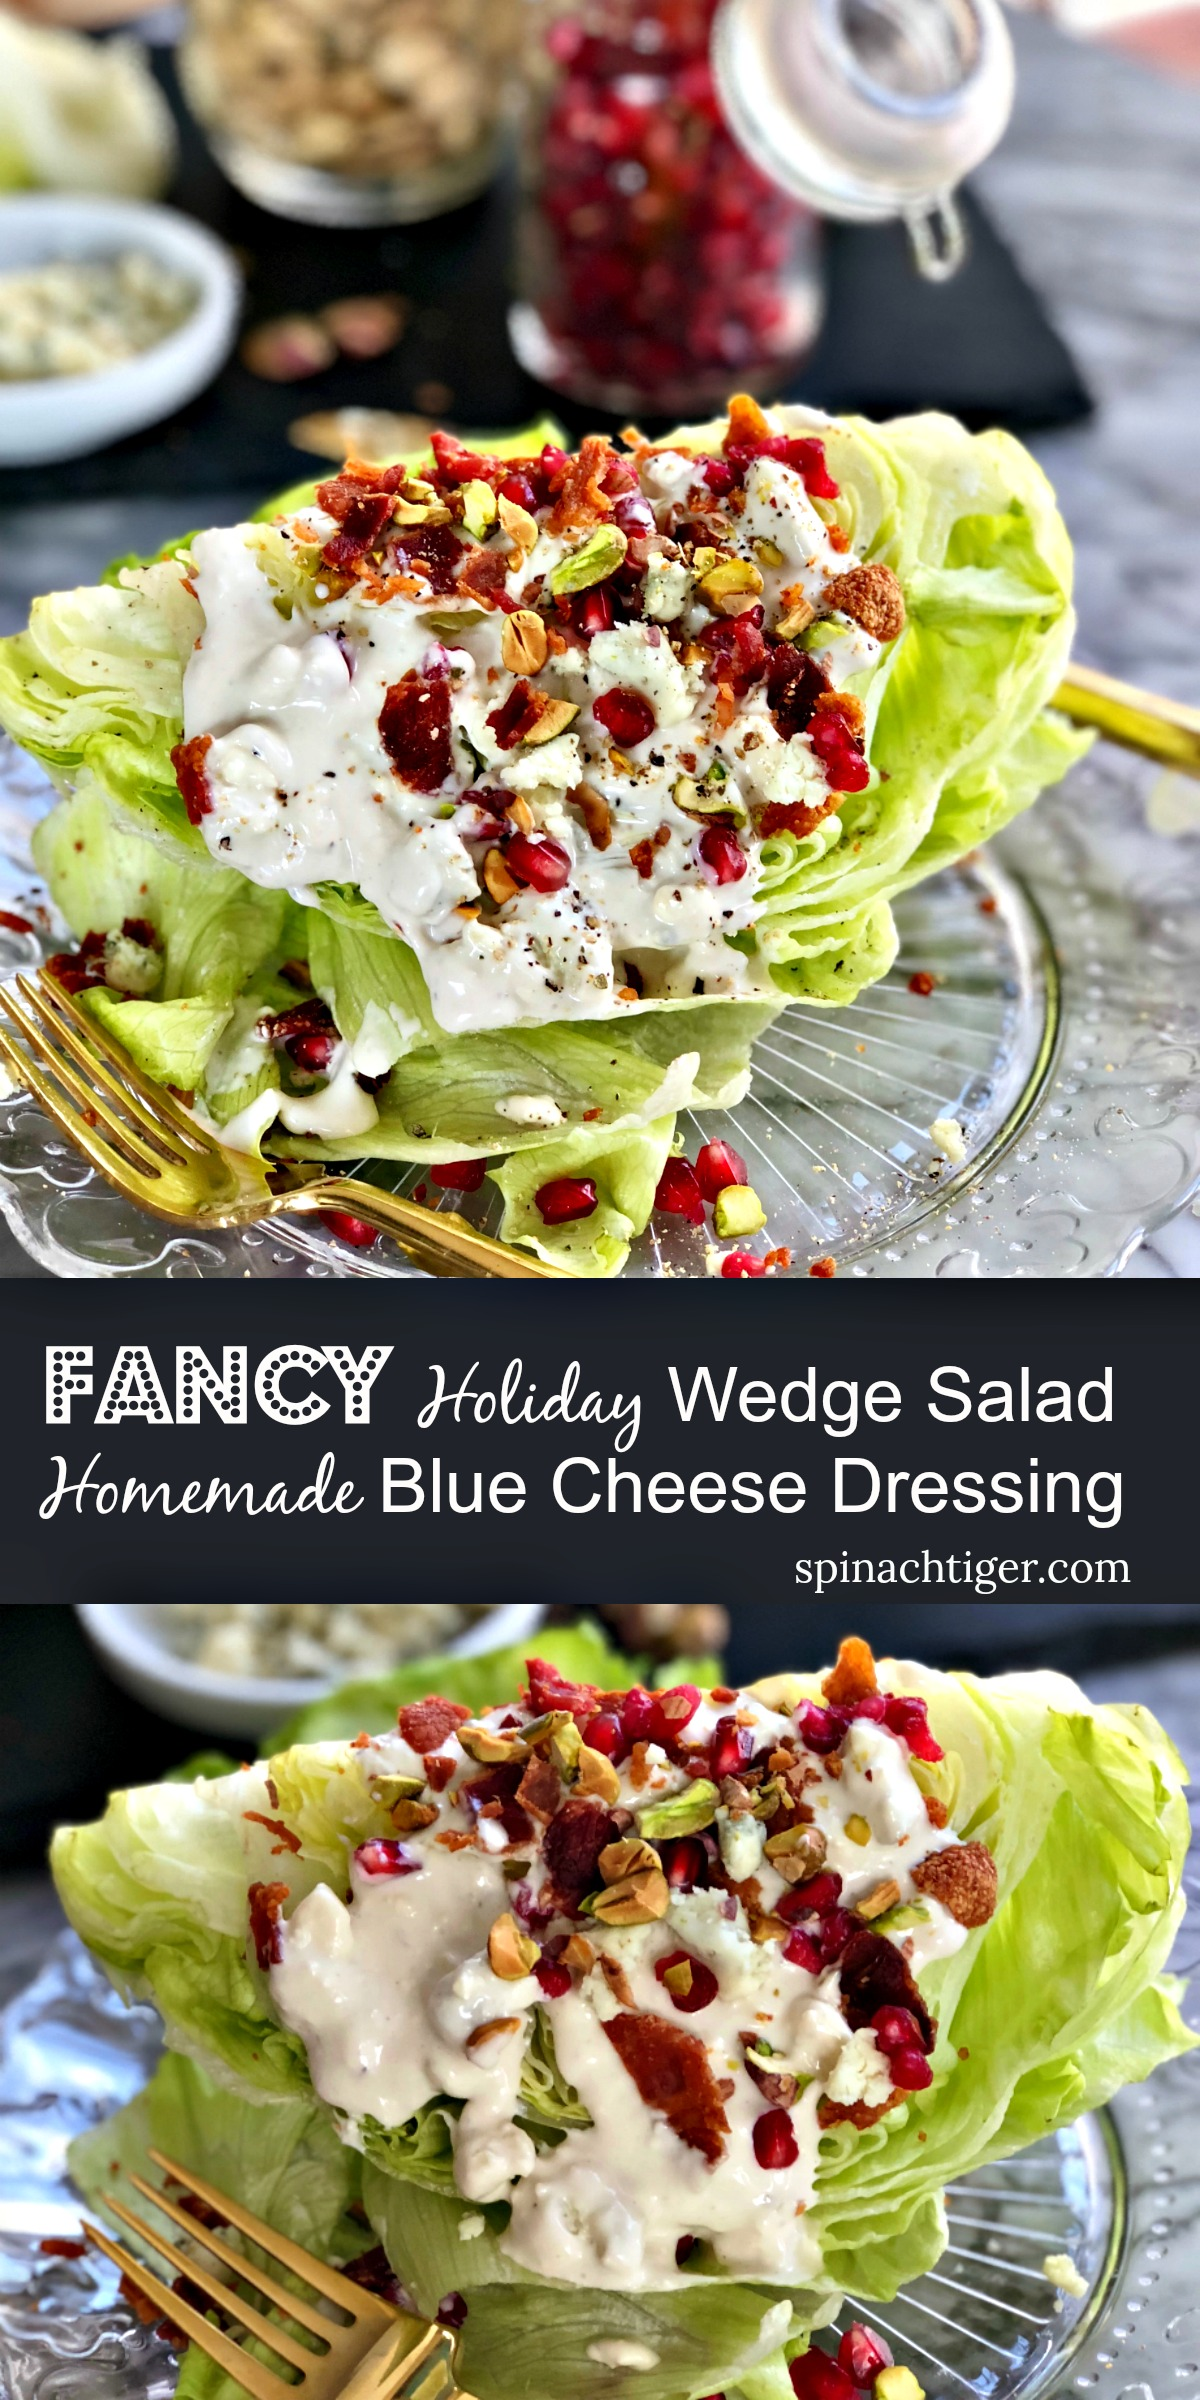 Fancy Holiday Party Wedge Salad from Spinach Tiger